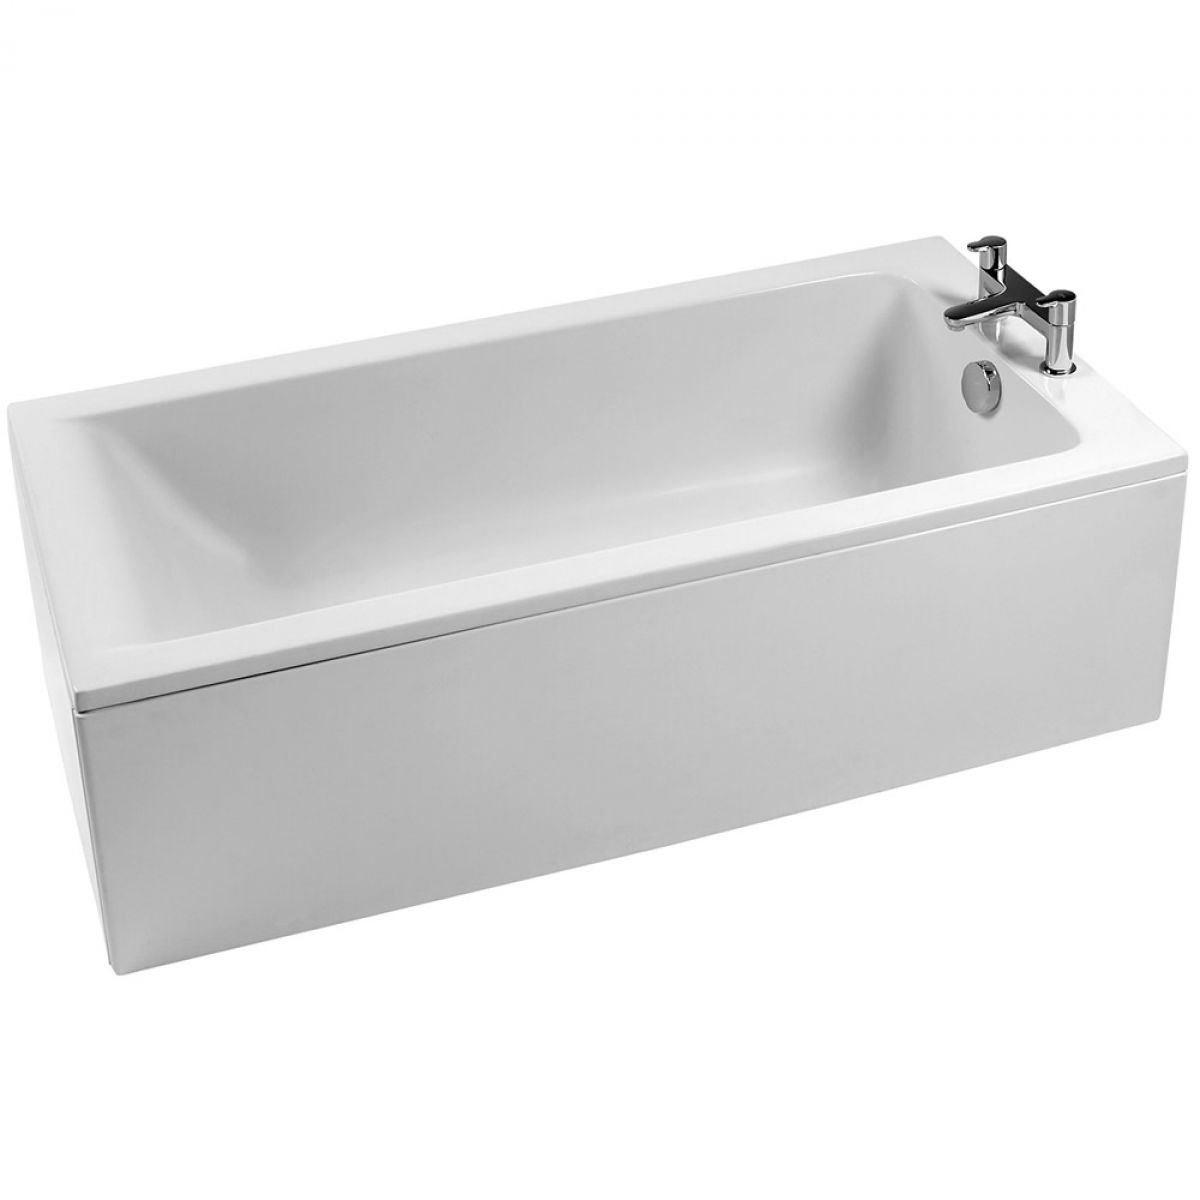 Ideal Standard Concept Idealform Single Ended Bath : UK Bathrooms